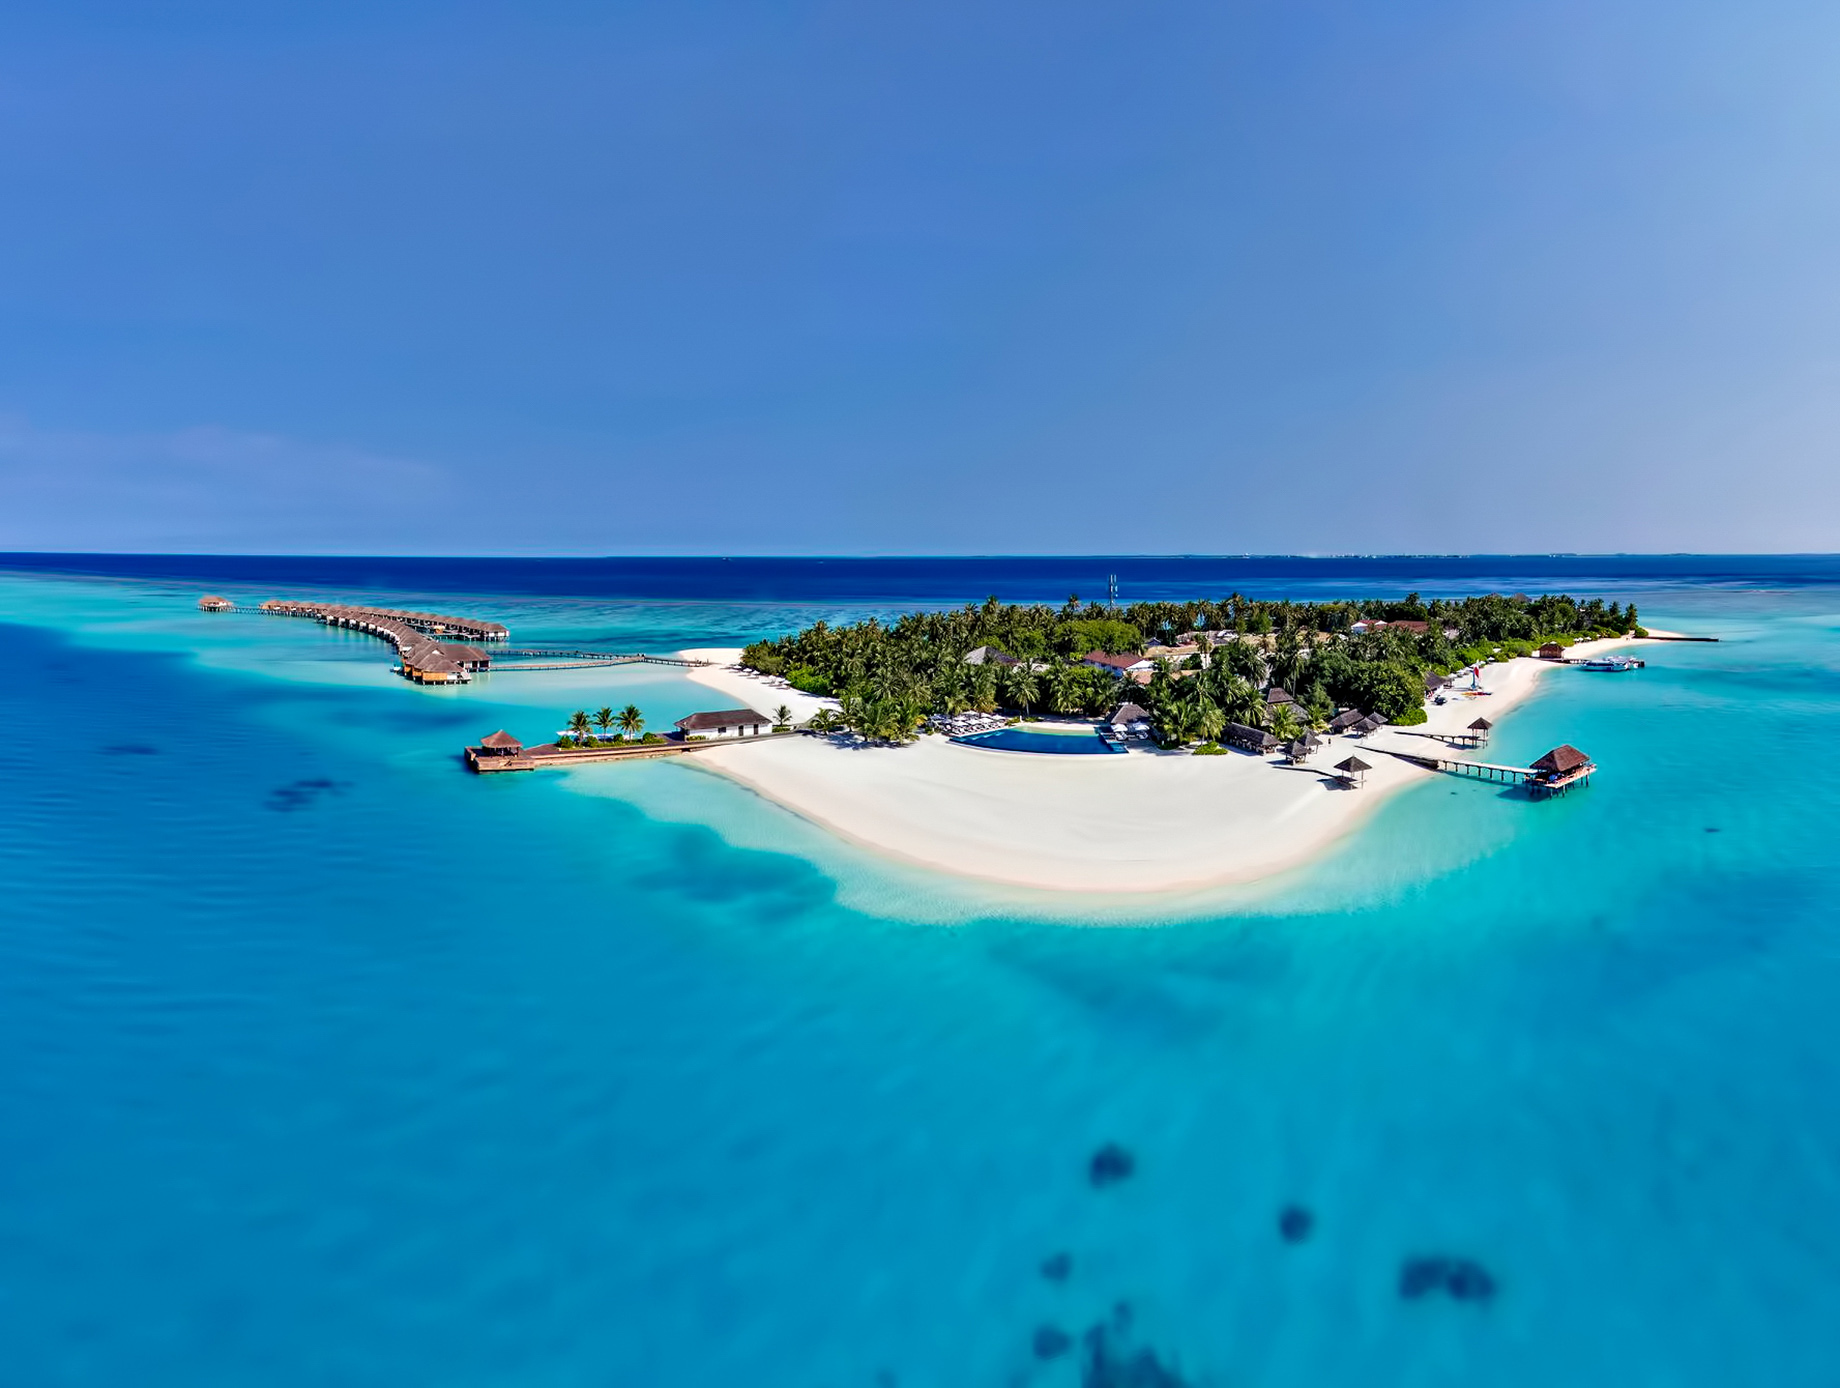 Velassaru Maldives Luxury Resort – South Male Atoll, Maldives